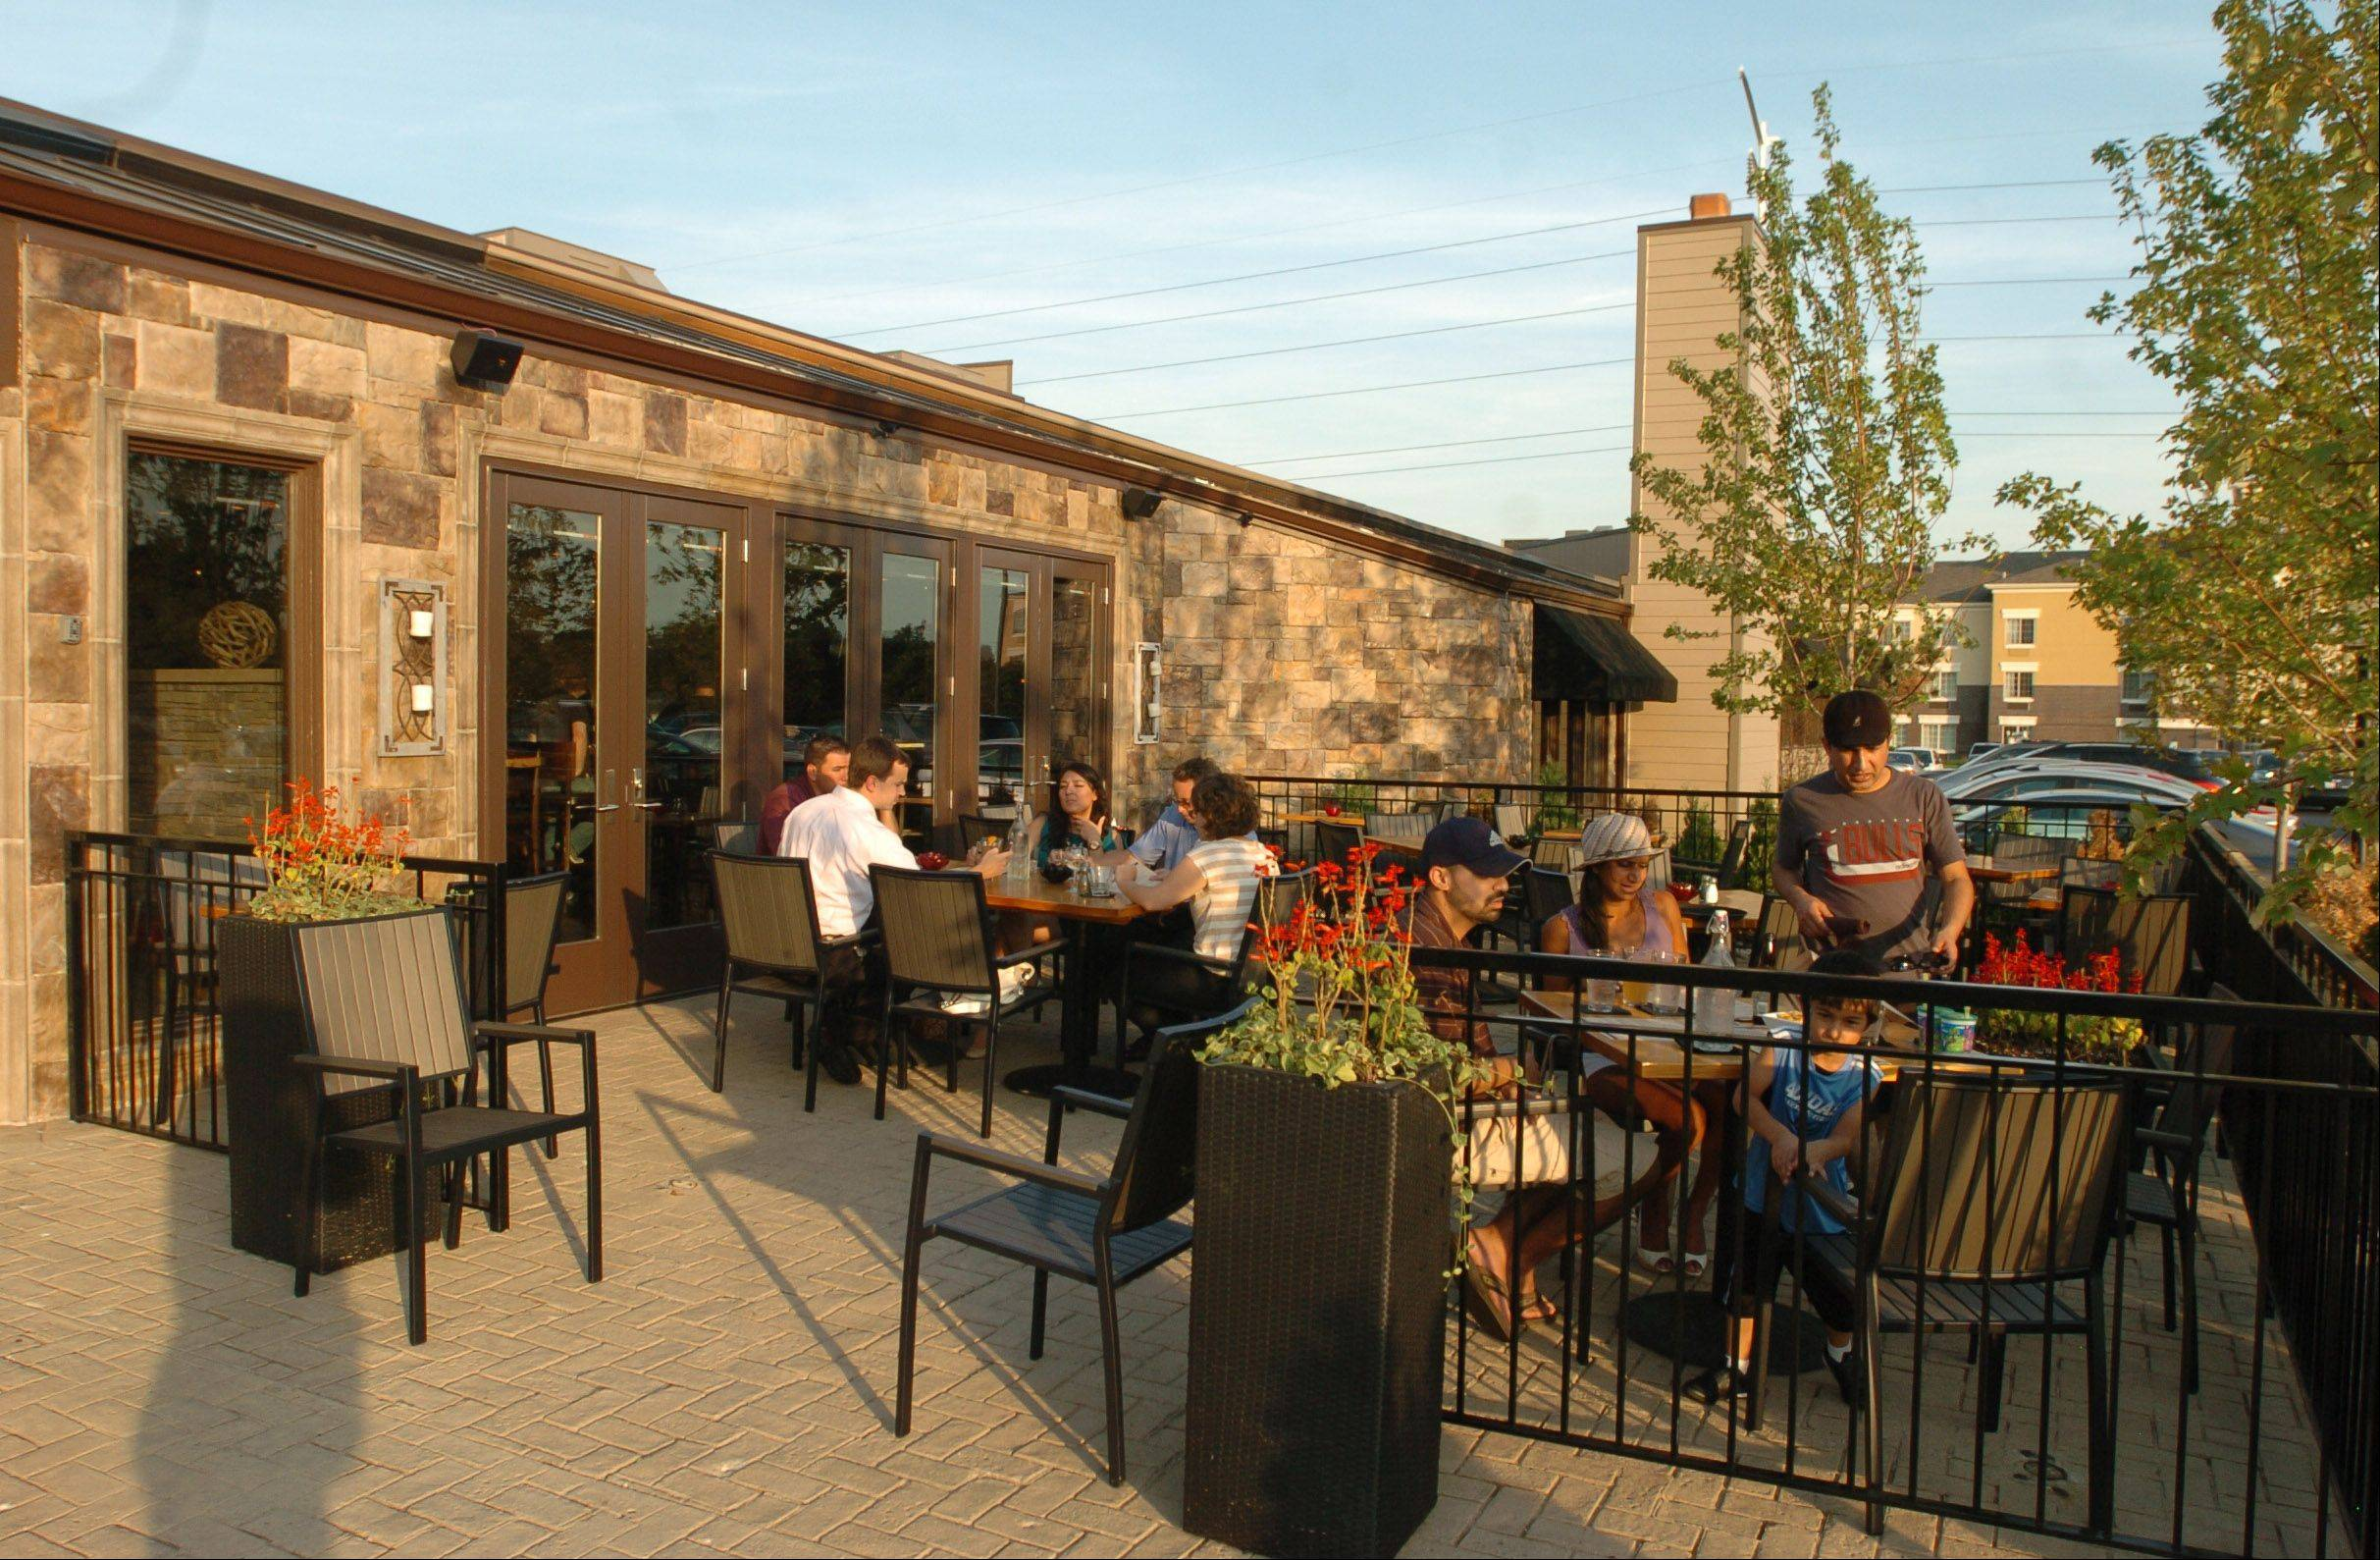 A patio provides outdoor seating at Lombard's Trademark Tavern.